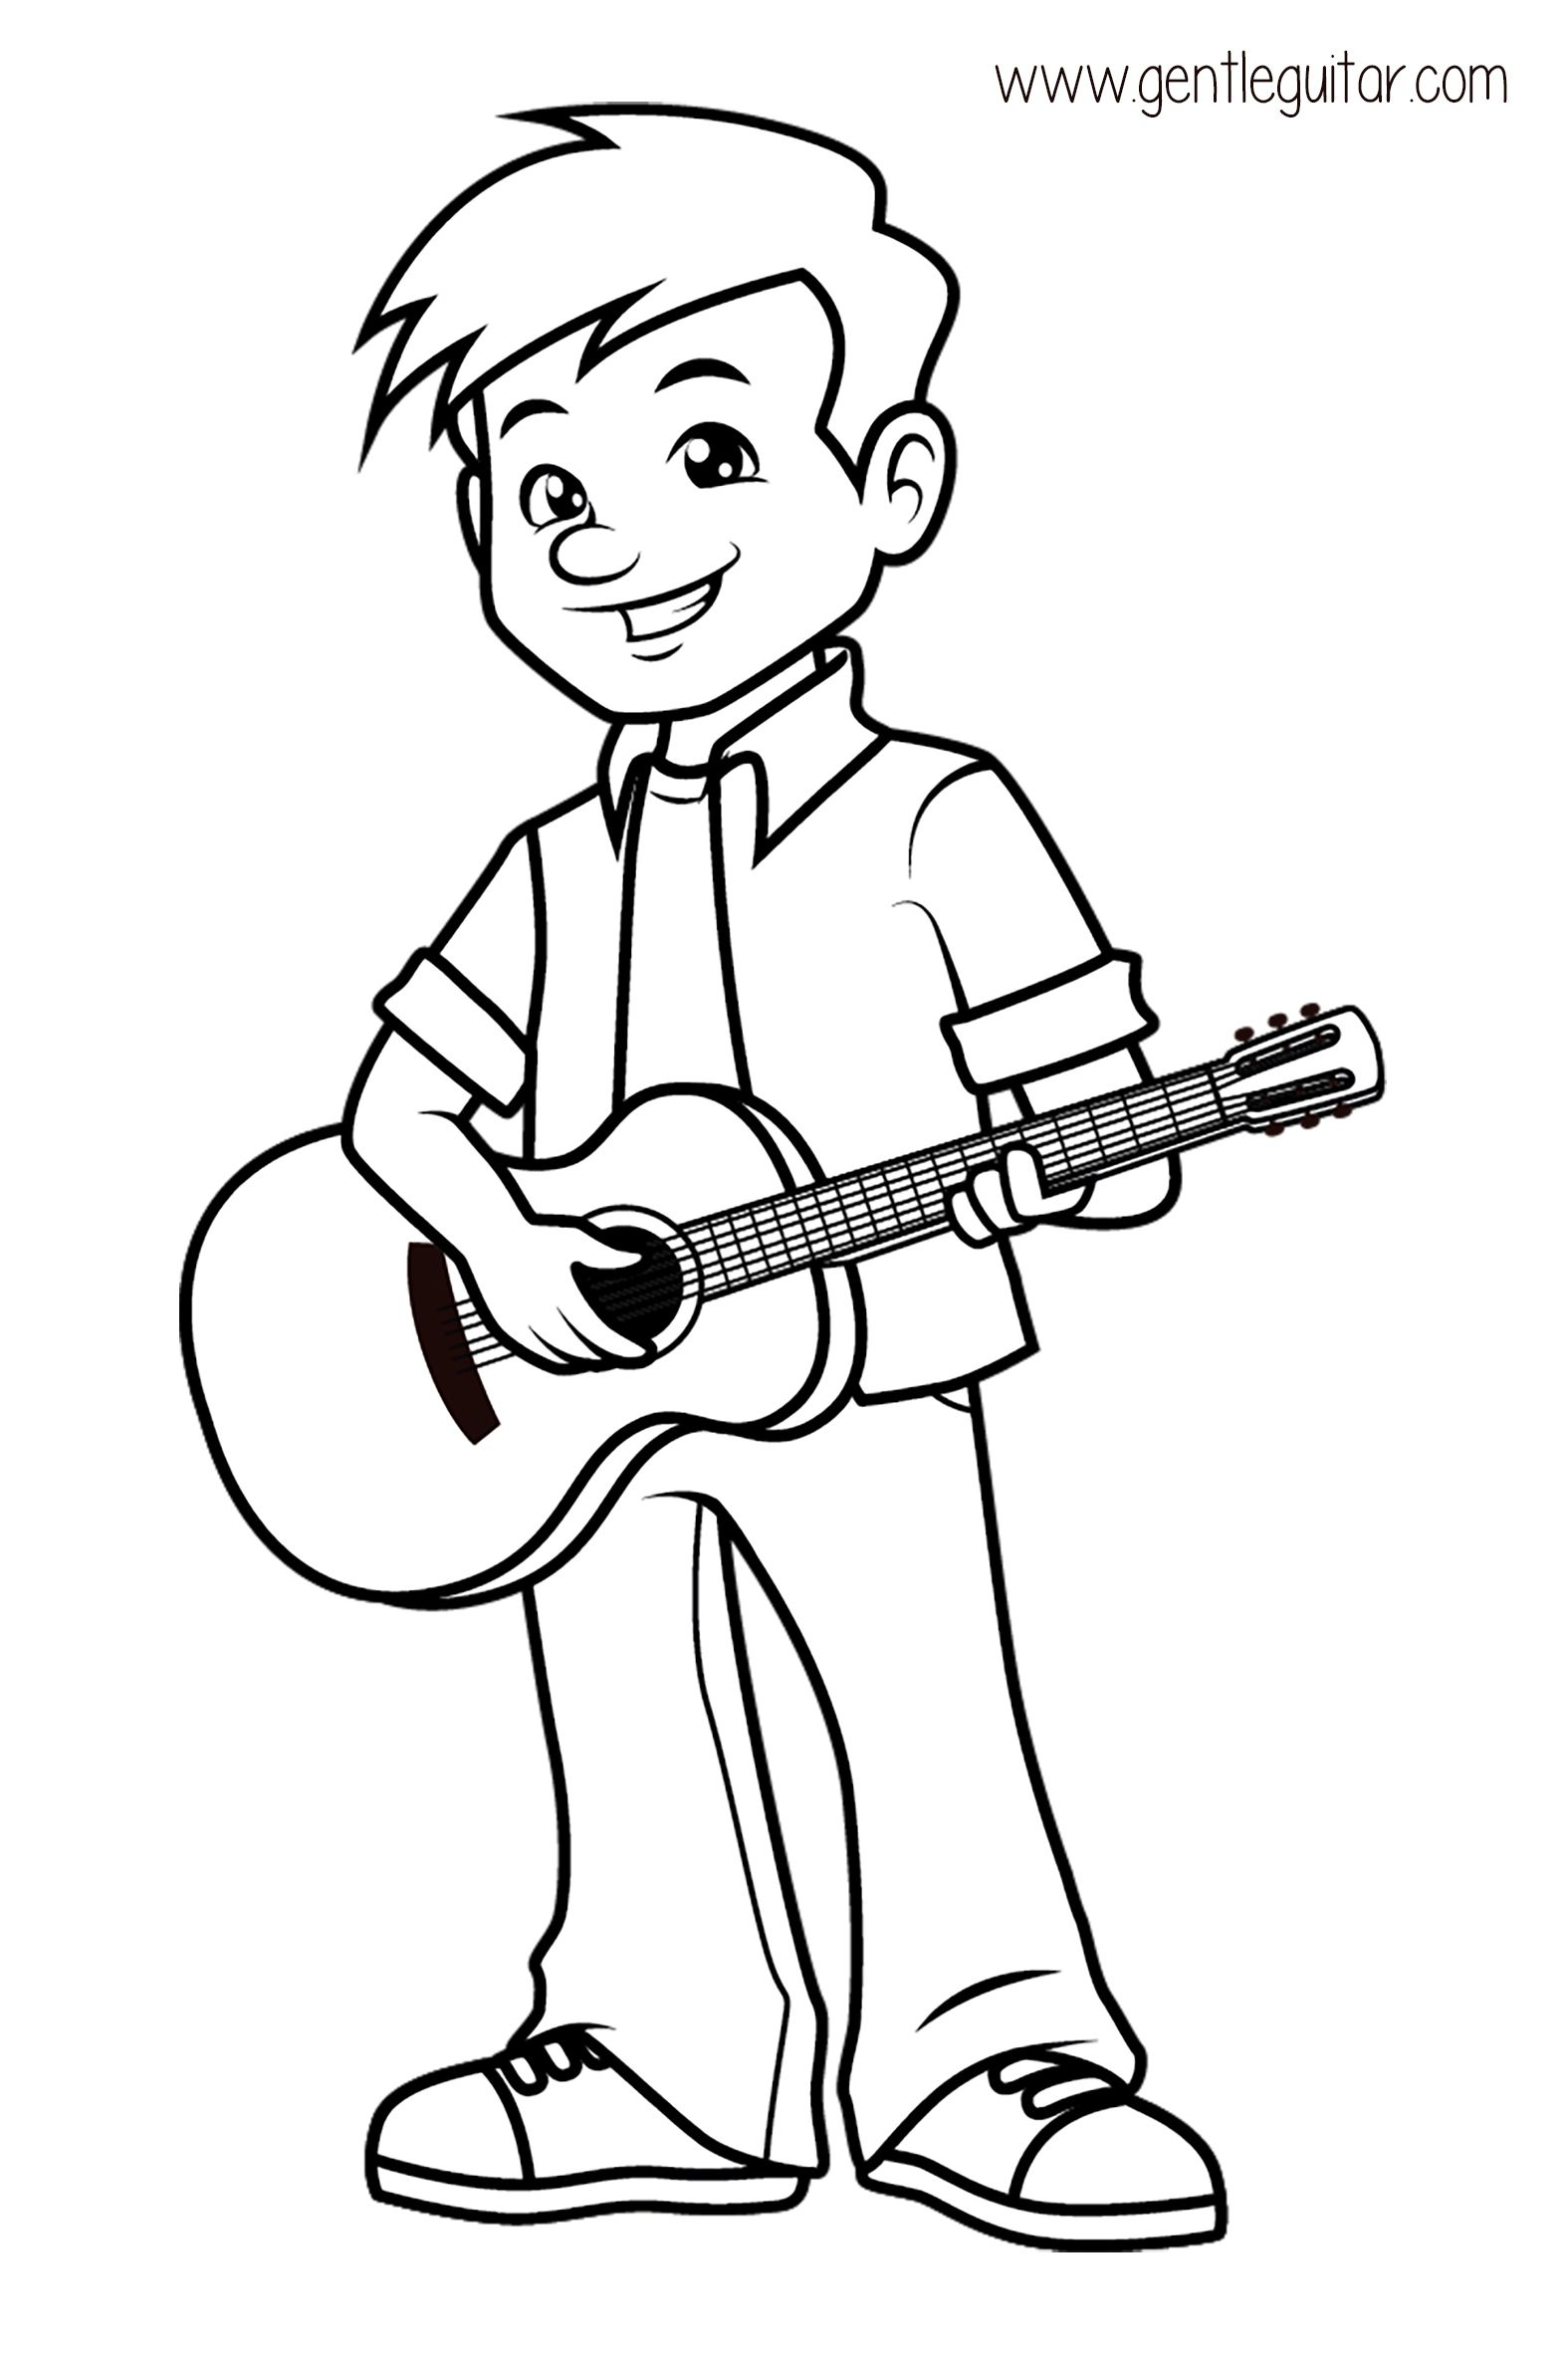 Coloring a boy playing guitar. Coloring prepares children